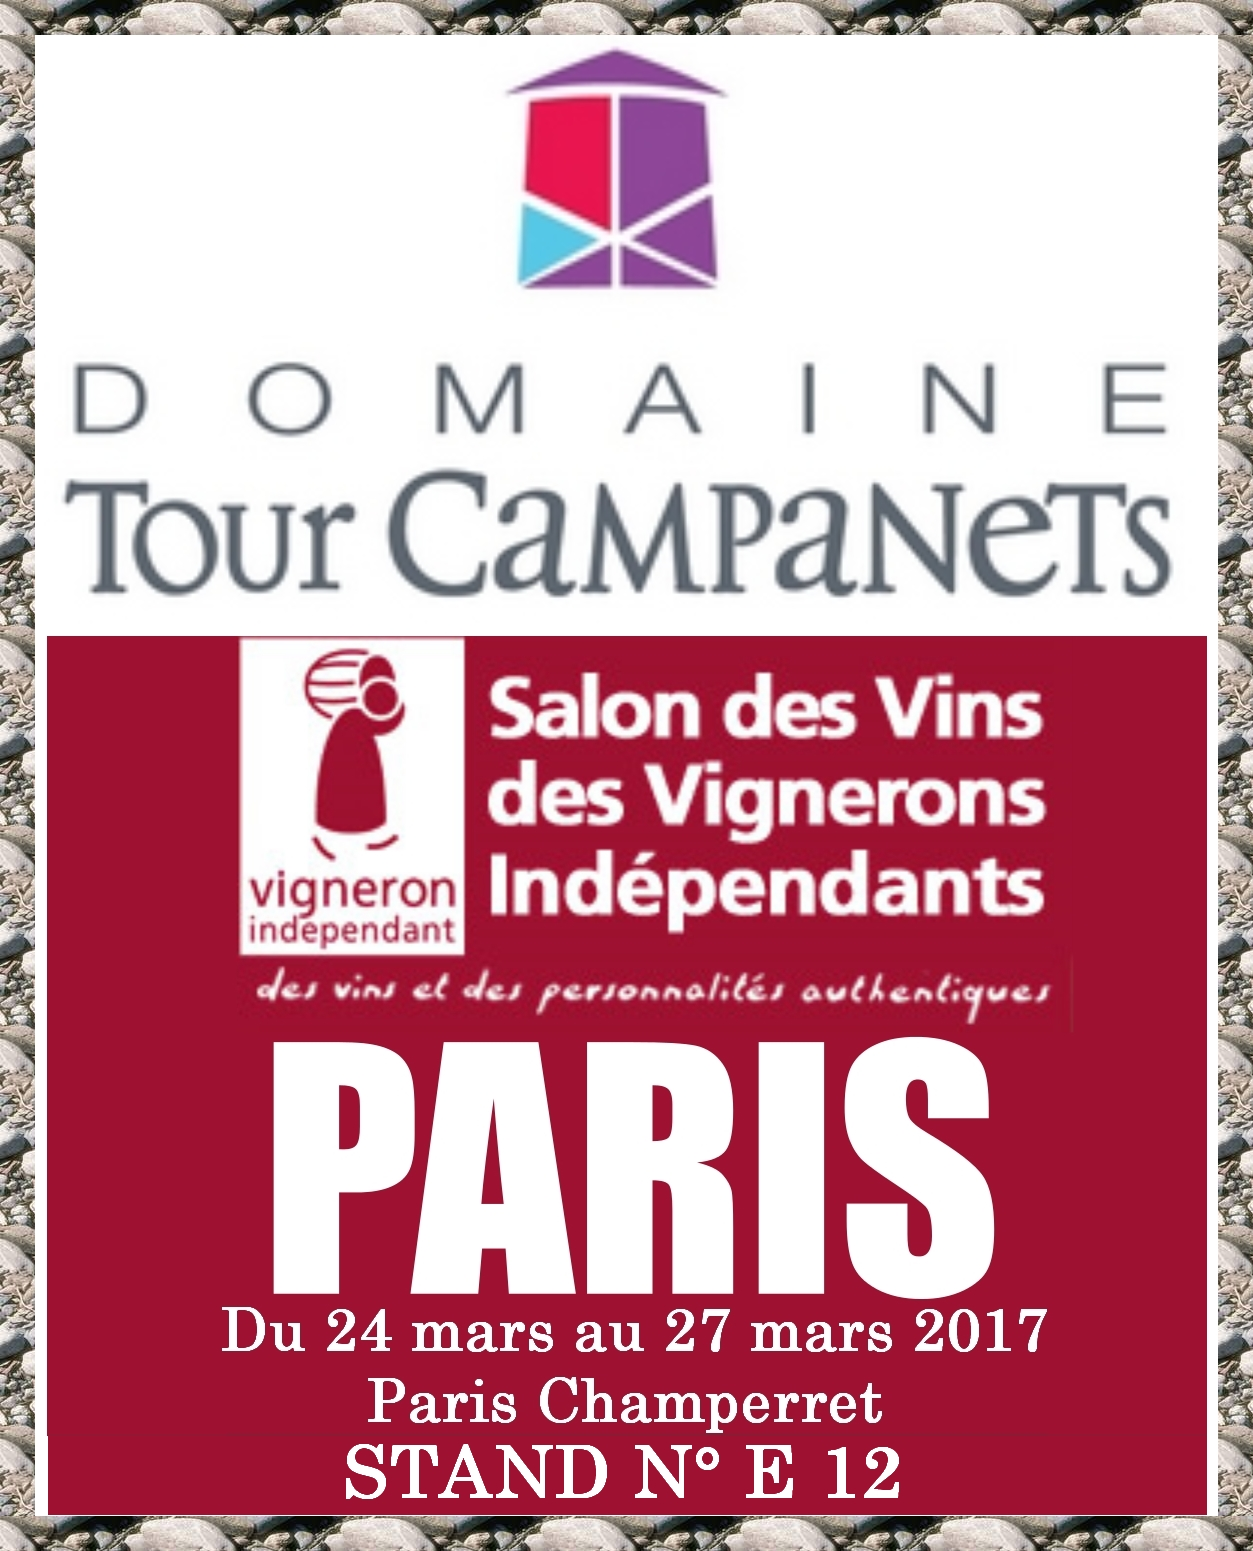 SALON DES VIGNERONS INDEPENDANT PARIS CHAMPERRET 2017